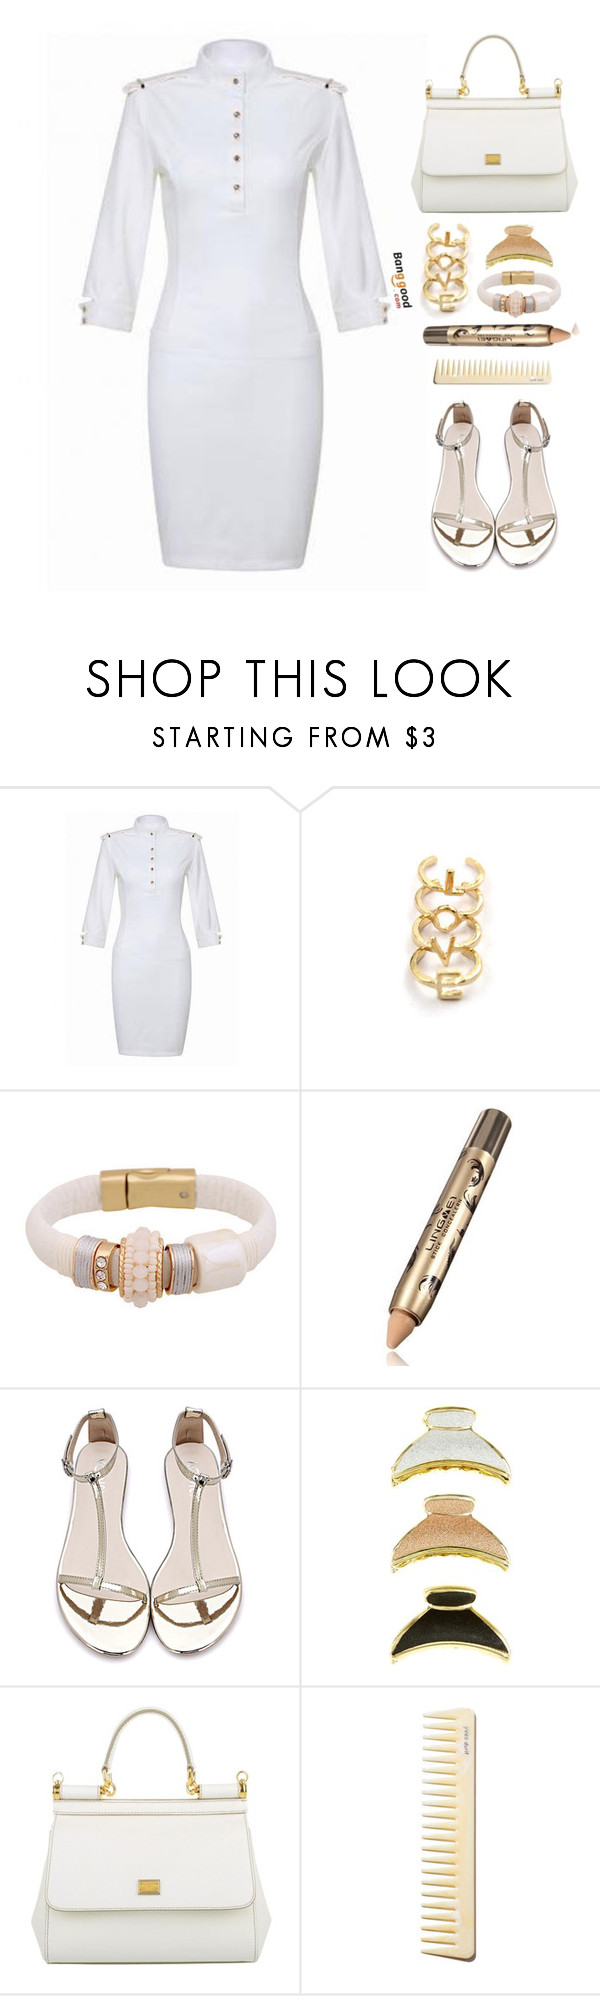 """Banggood"" by simona-altobelli ❤ liked on Polyvore featuring Dolce&Gabbana"